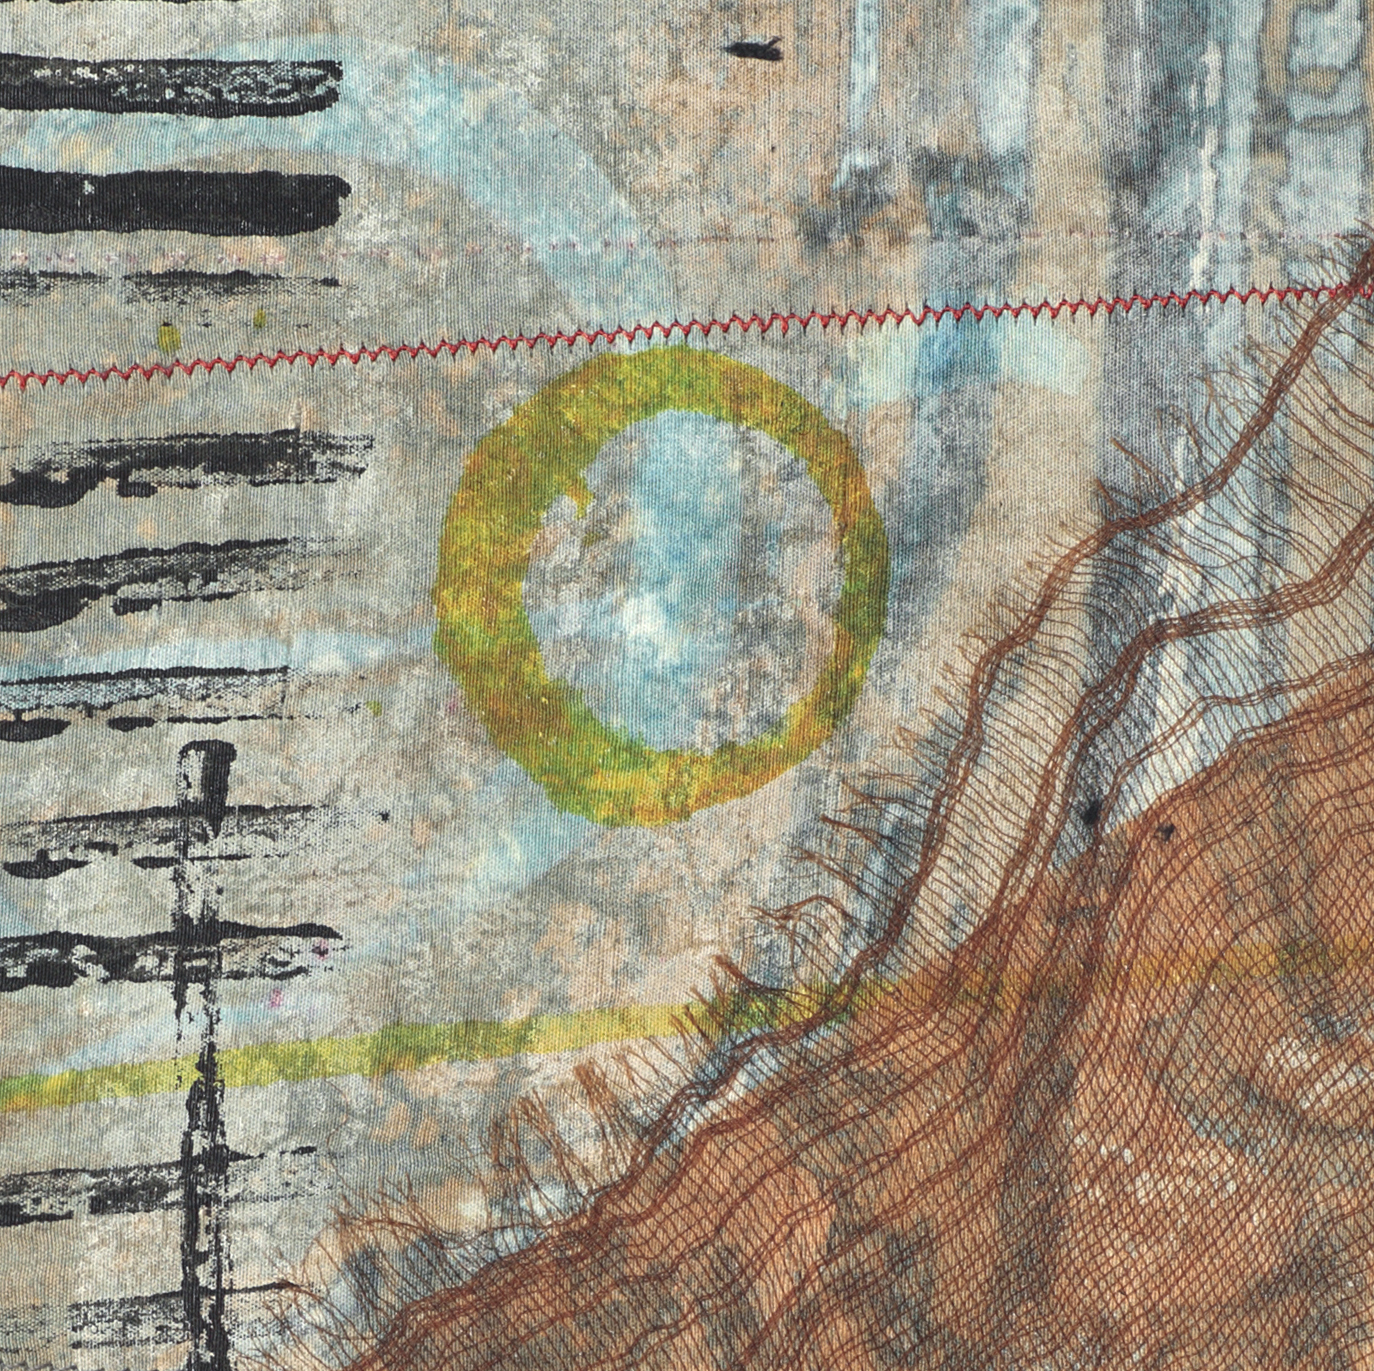 Small Work 8 detail  8x6 inches